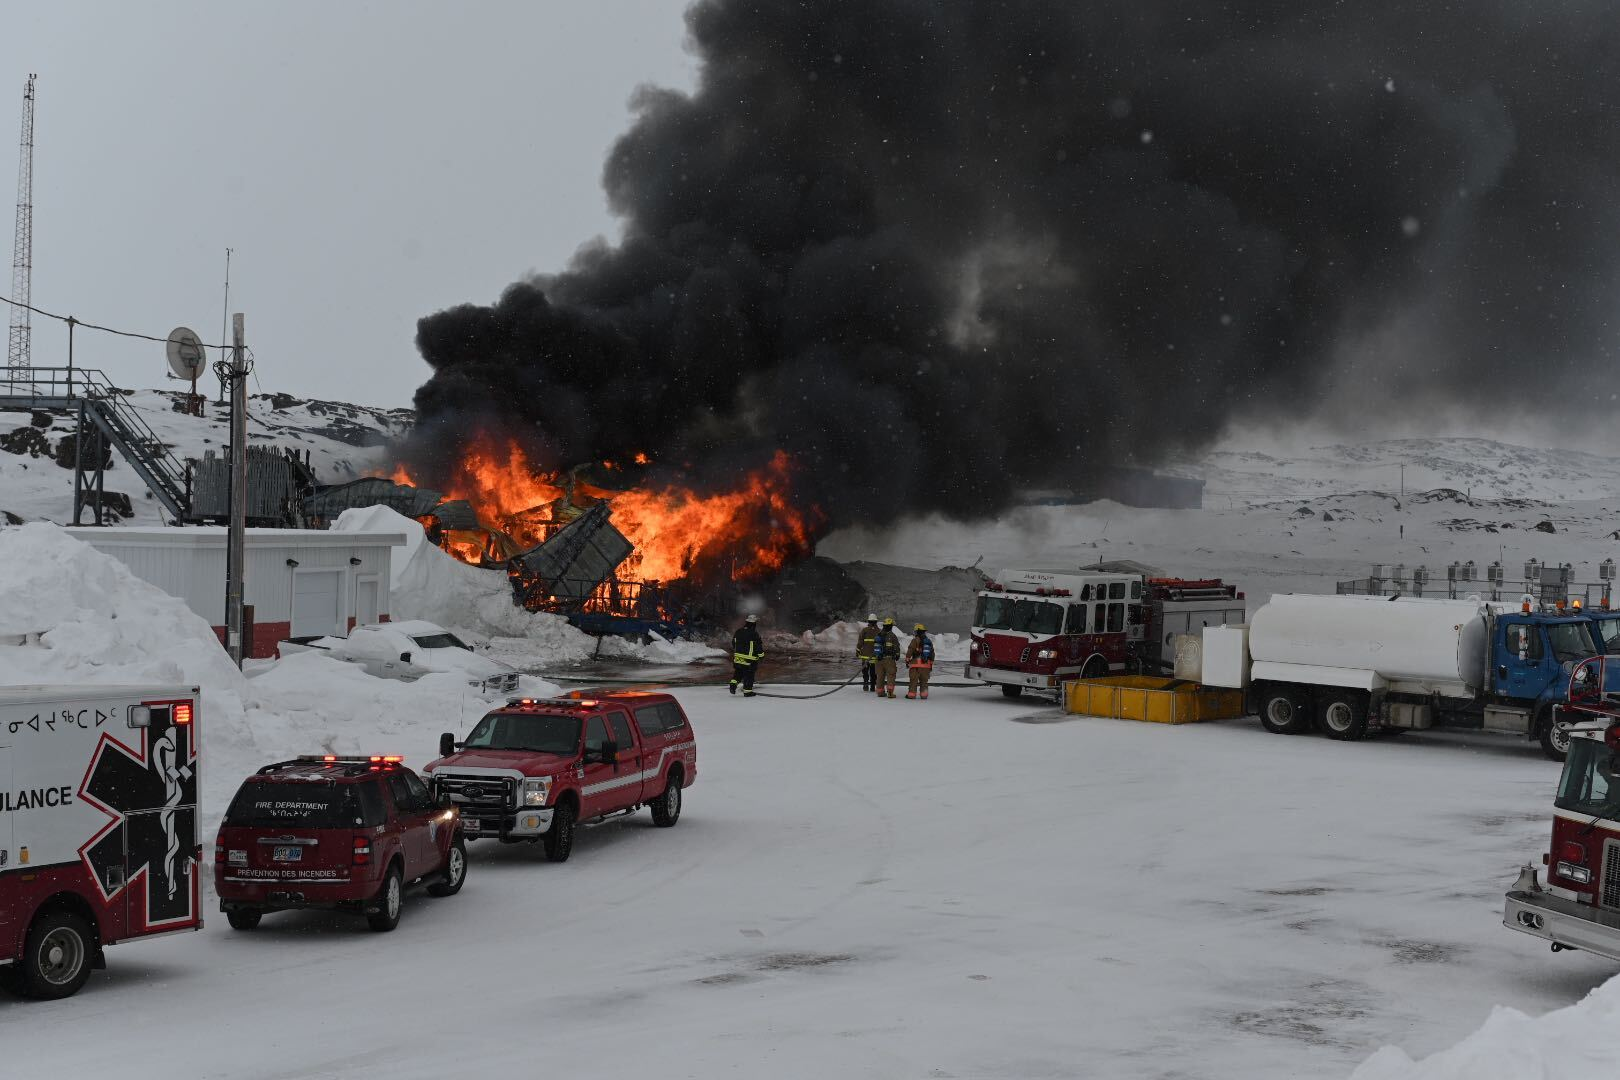 Iqaluit firefighters respond to a fire south of the airport Monday afternoon. At least three fire trucks and an ambulance were at the scene at approximately 4 p.m., as flames engulfed a building near the sewage lagoon. (Photo by Dustin Patar)